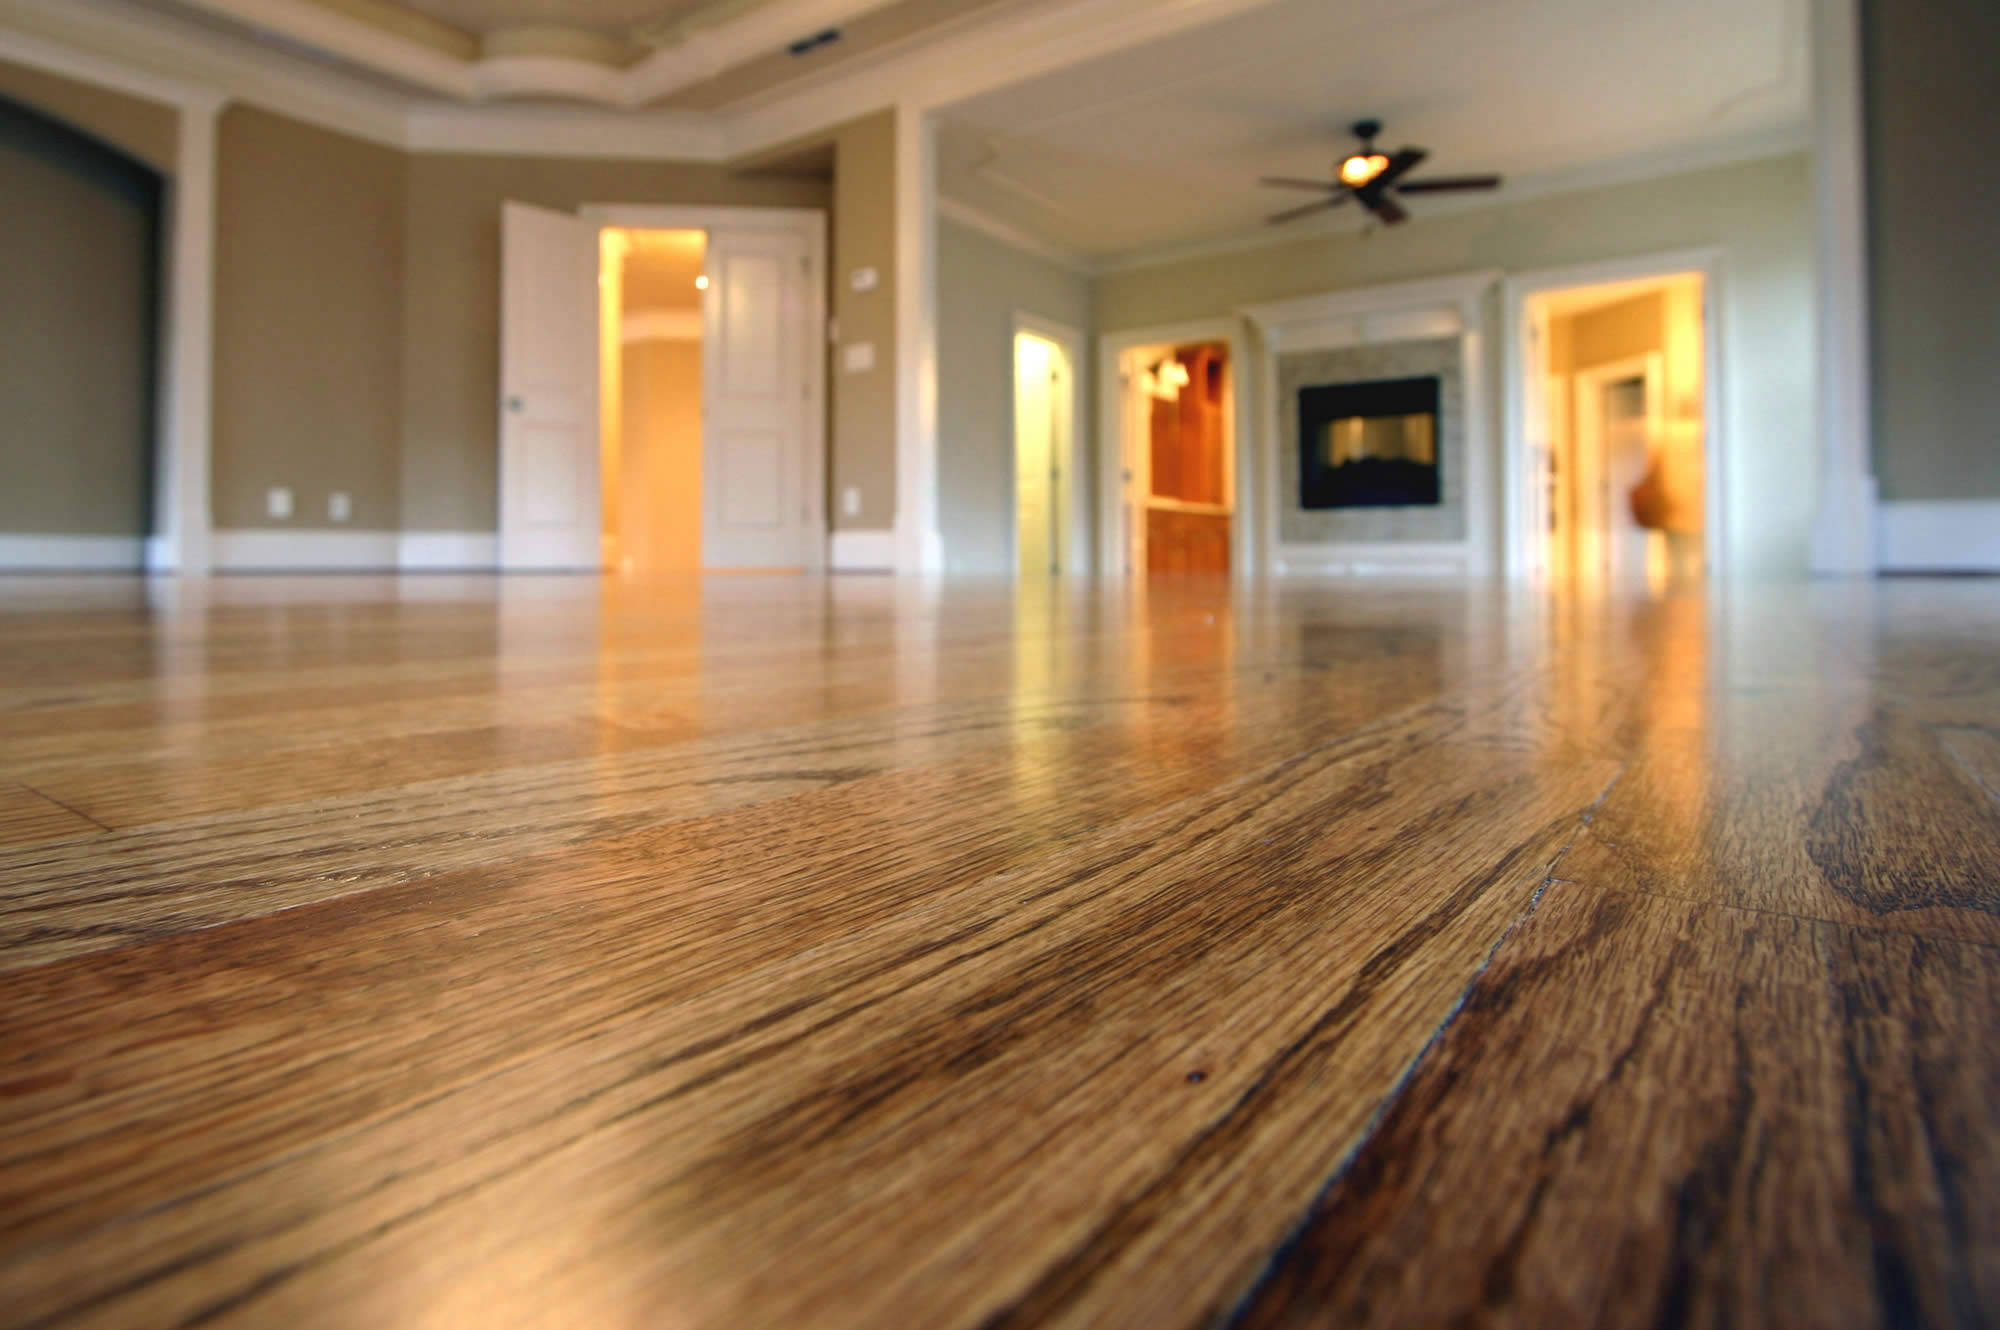 Landry Wood Flooring residential hardwood flooring serving merrimack valley and southern new hampshire